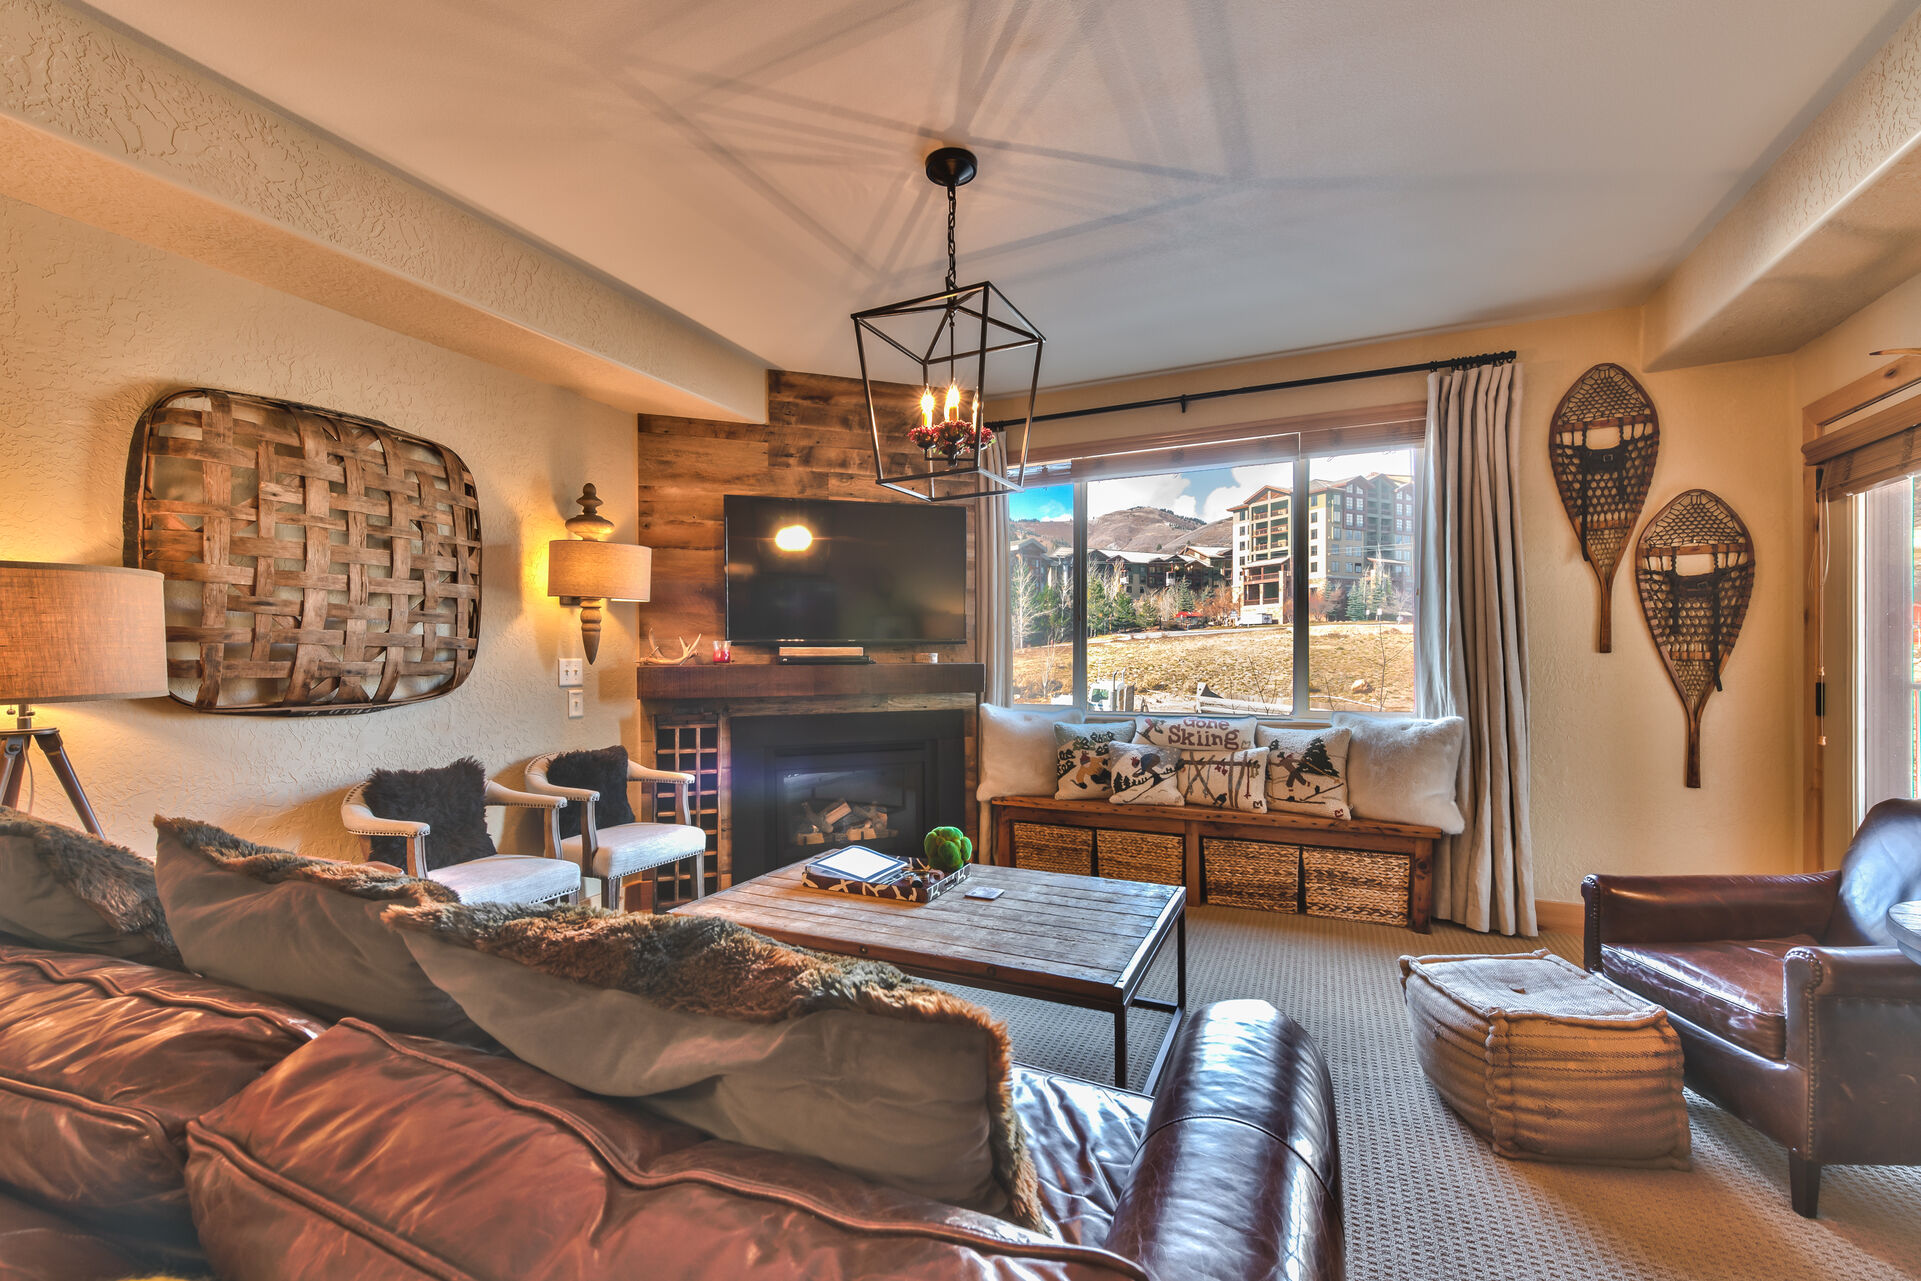 Living Room with Comfortable Furnishings, including a Sofa Sleeper, Gas Fireplace, TV and Mountain Views